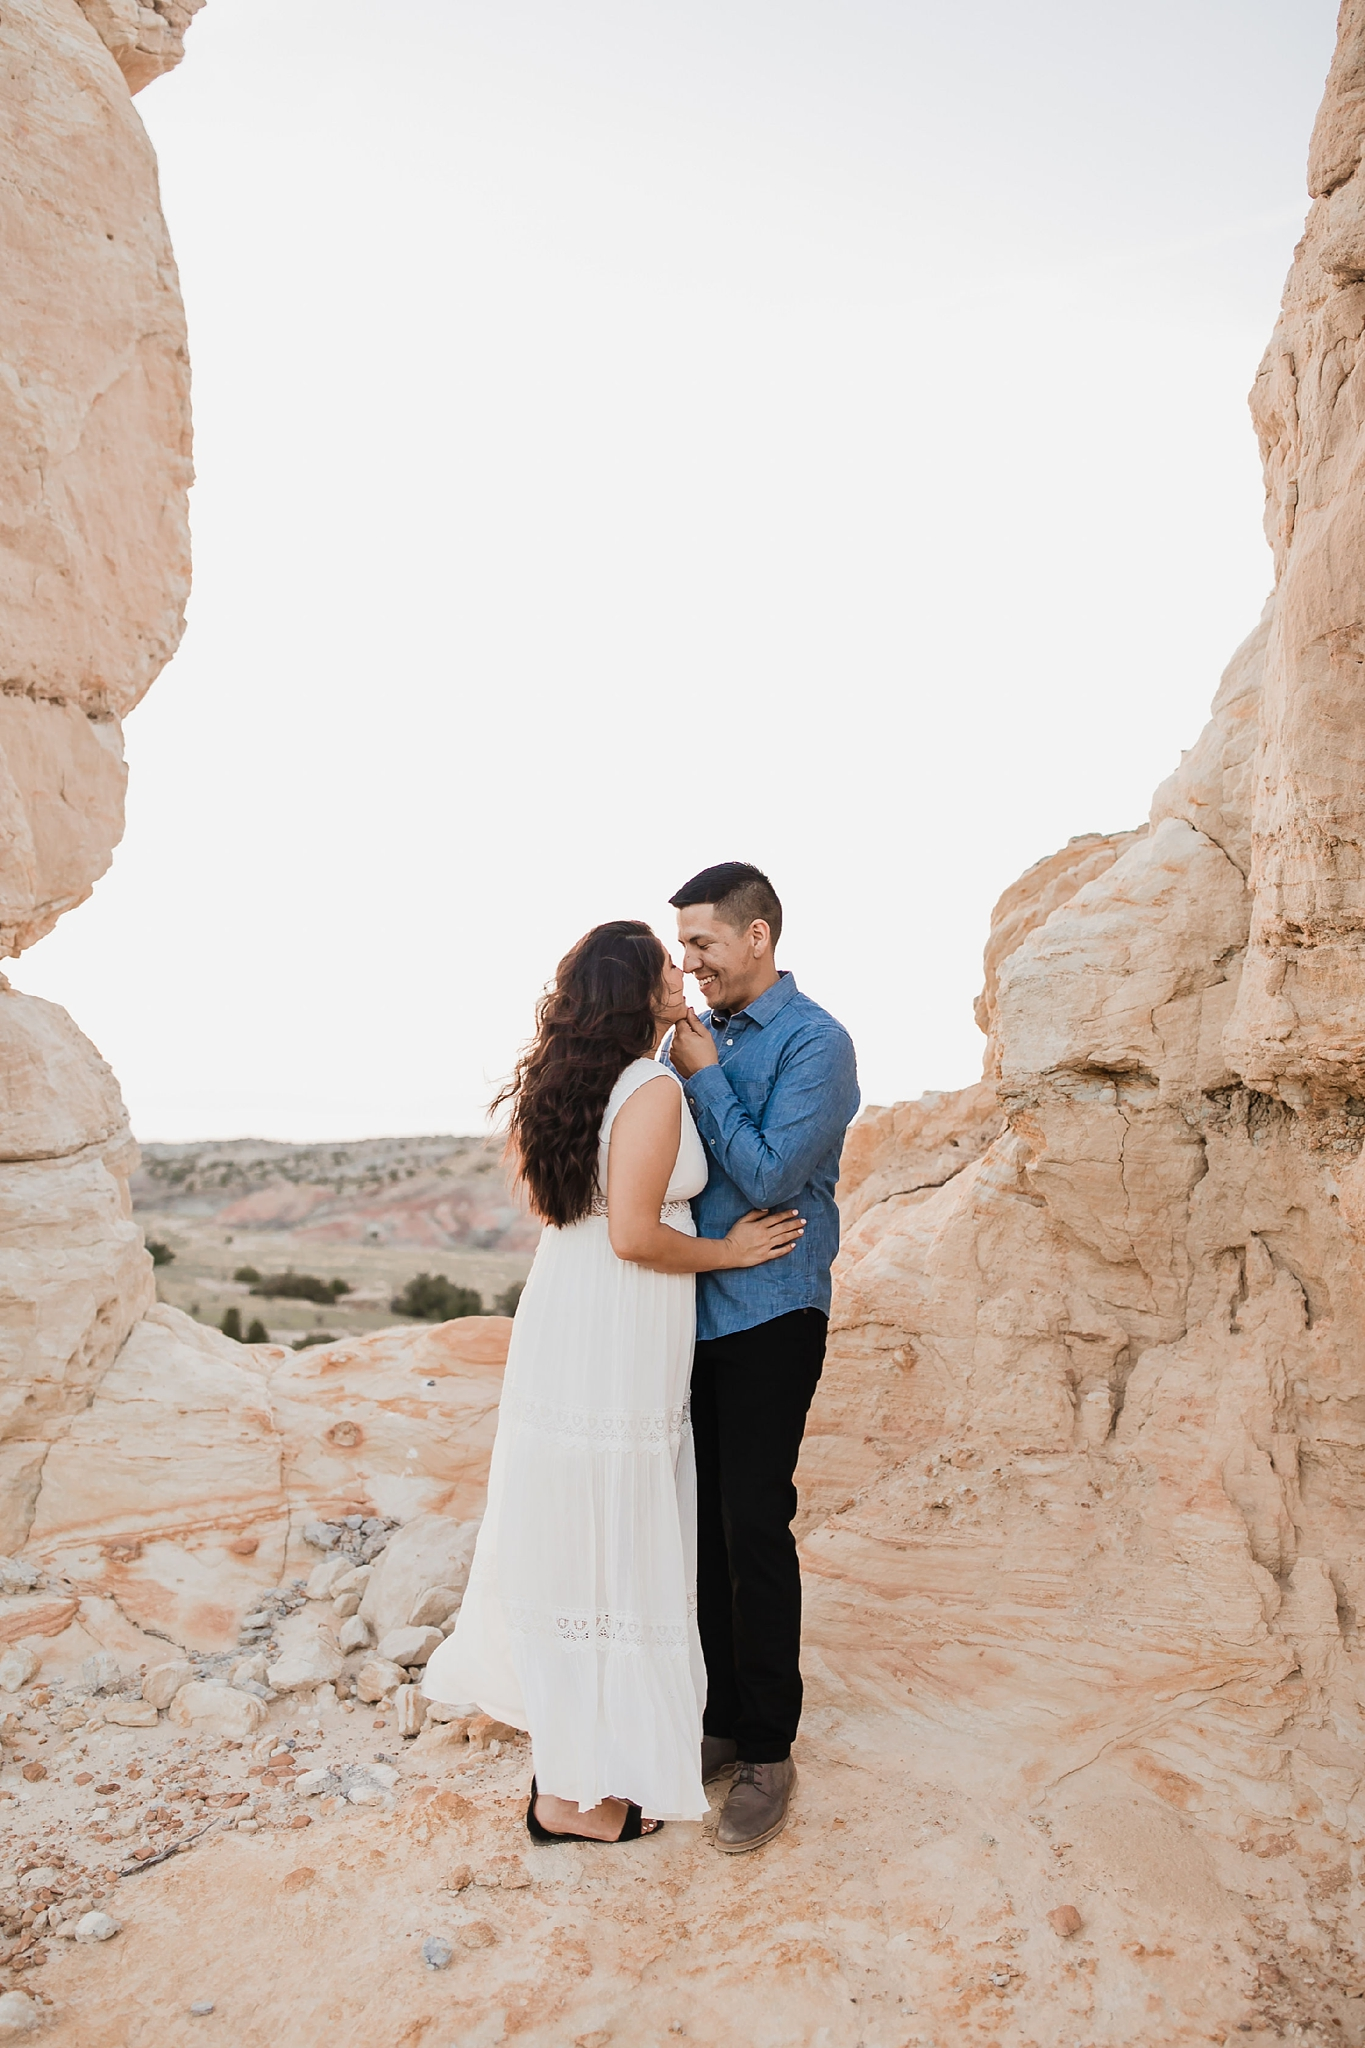 Alicia+lucia+photography+-+albuquerque+wedding+photographer+-+santa+fe+wedding+photography+-+new+mexico+wedding+photographer+-+new+mexico+wedding+-+new+mexico+engagement+-+white+mesa+engagement+-+desert+engagement_0004.jpg